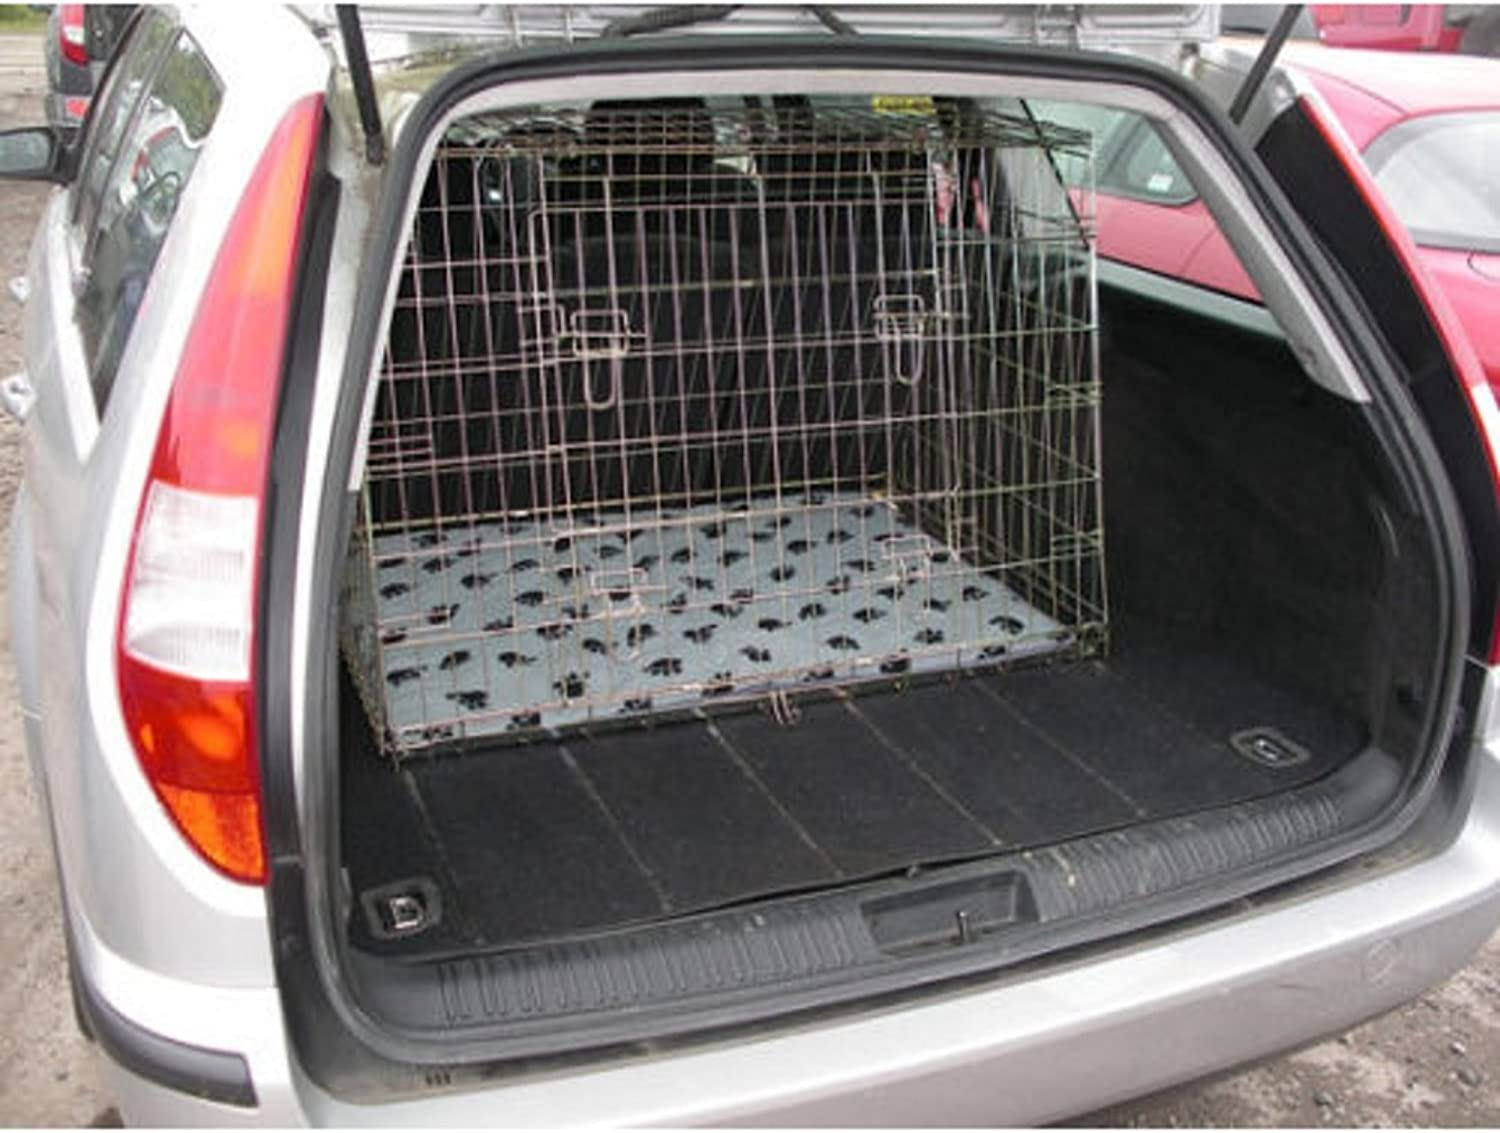 Arrow FORD MONDEO ESTATE 0015 SLOPED 4x4 ESTATE CAR DOG CAGE TRAVEL CRATE PUPPY BOOT GUARD CAGES